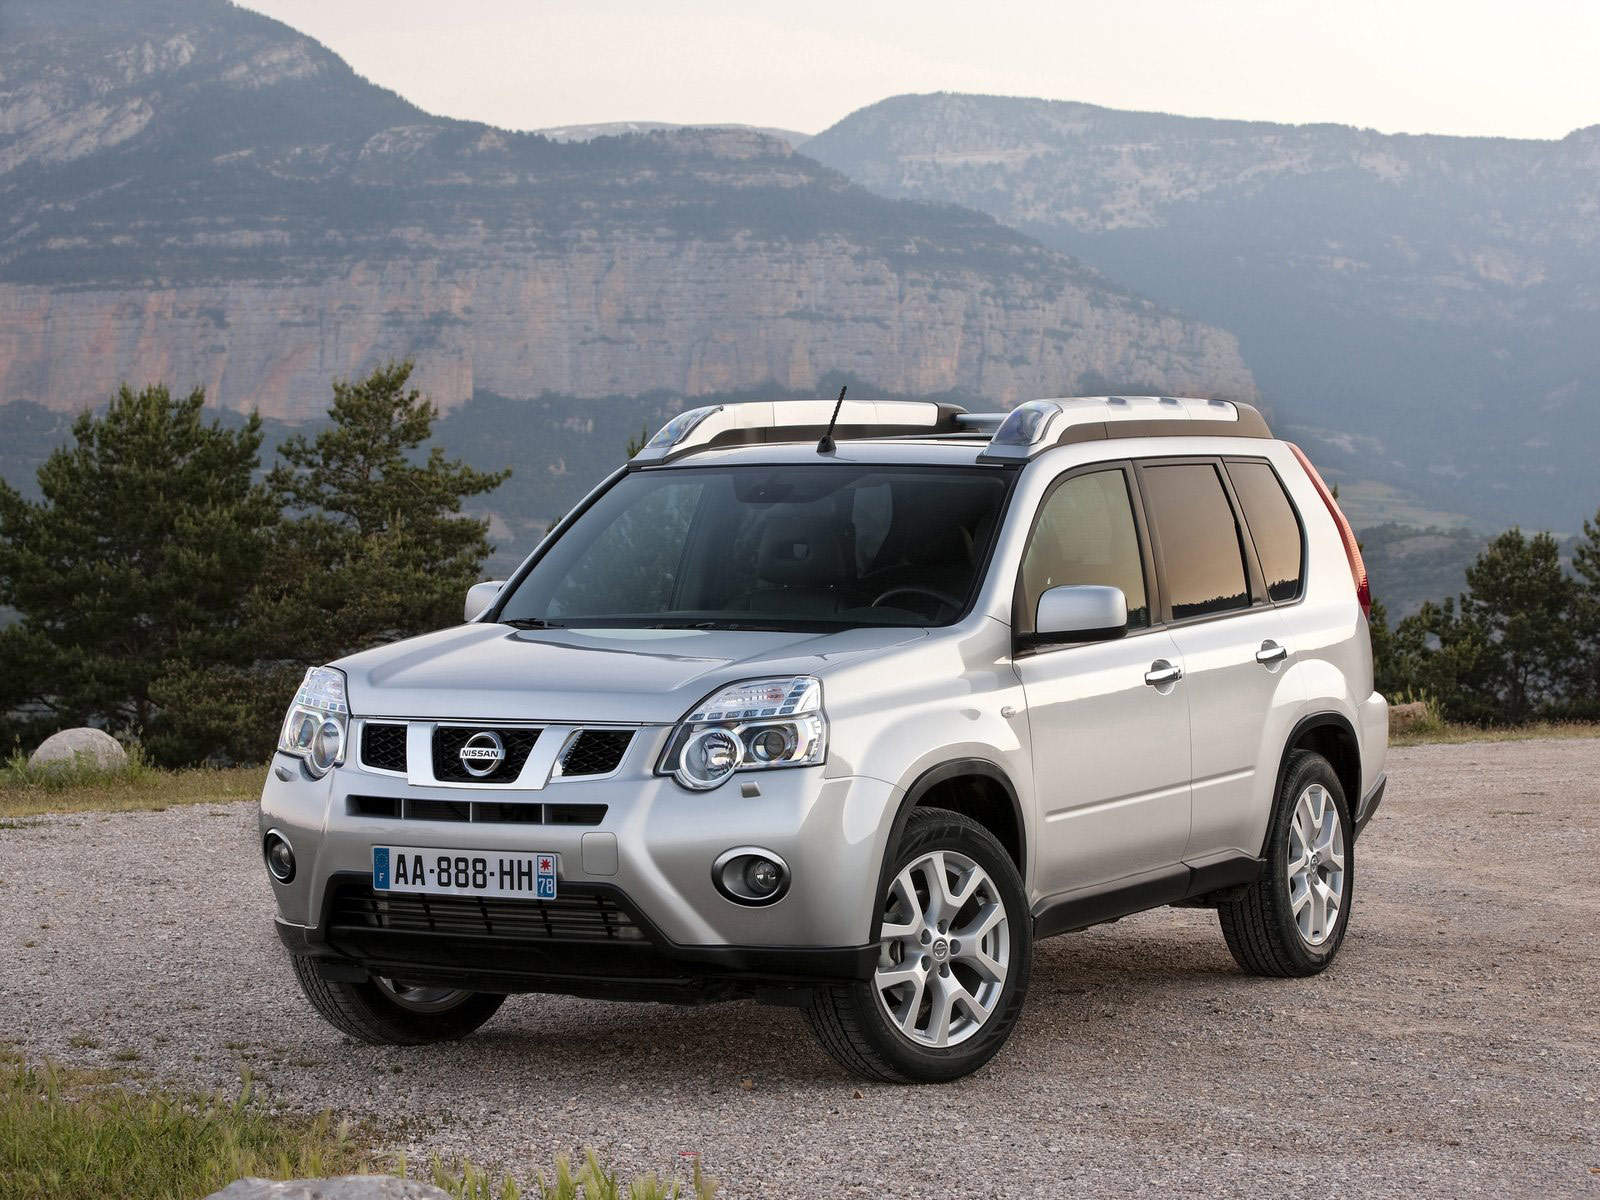 2011 nissan x trail car photos accident lawyers information. Black Bedroom Furniture Sets. Home Design Ideas